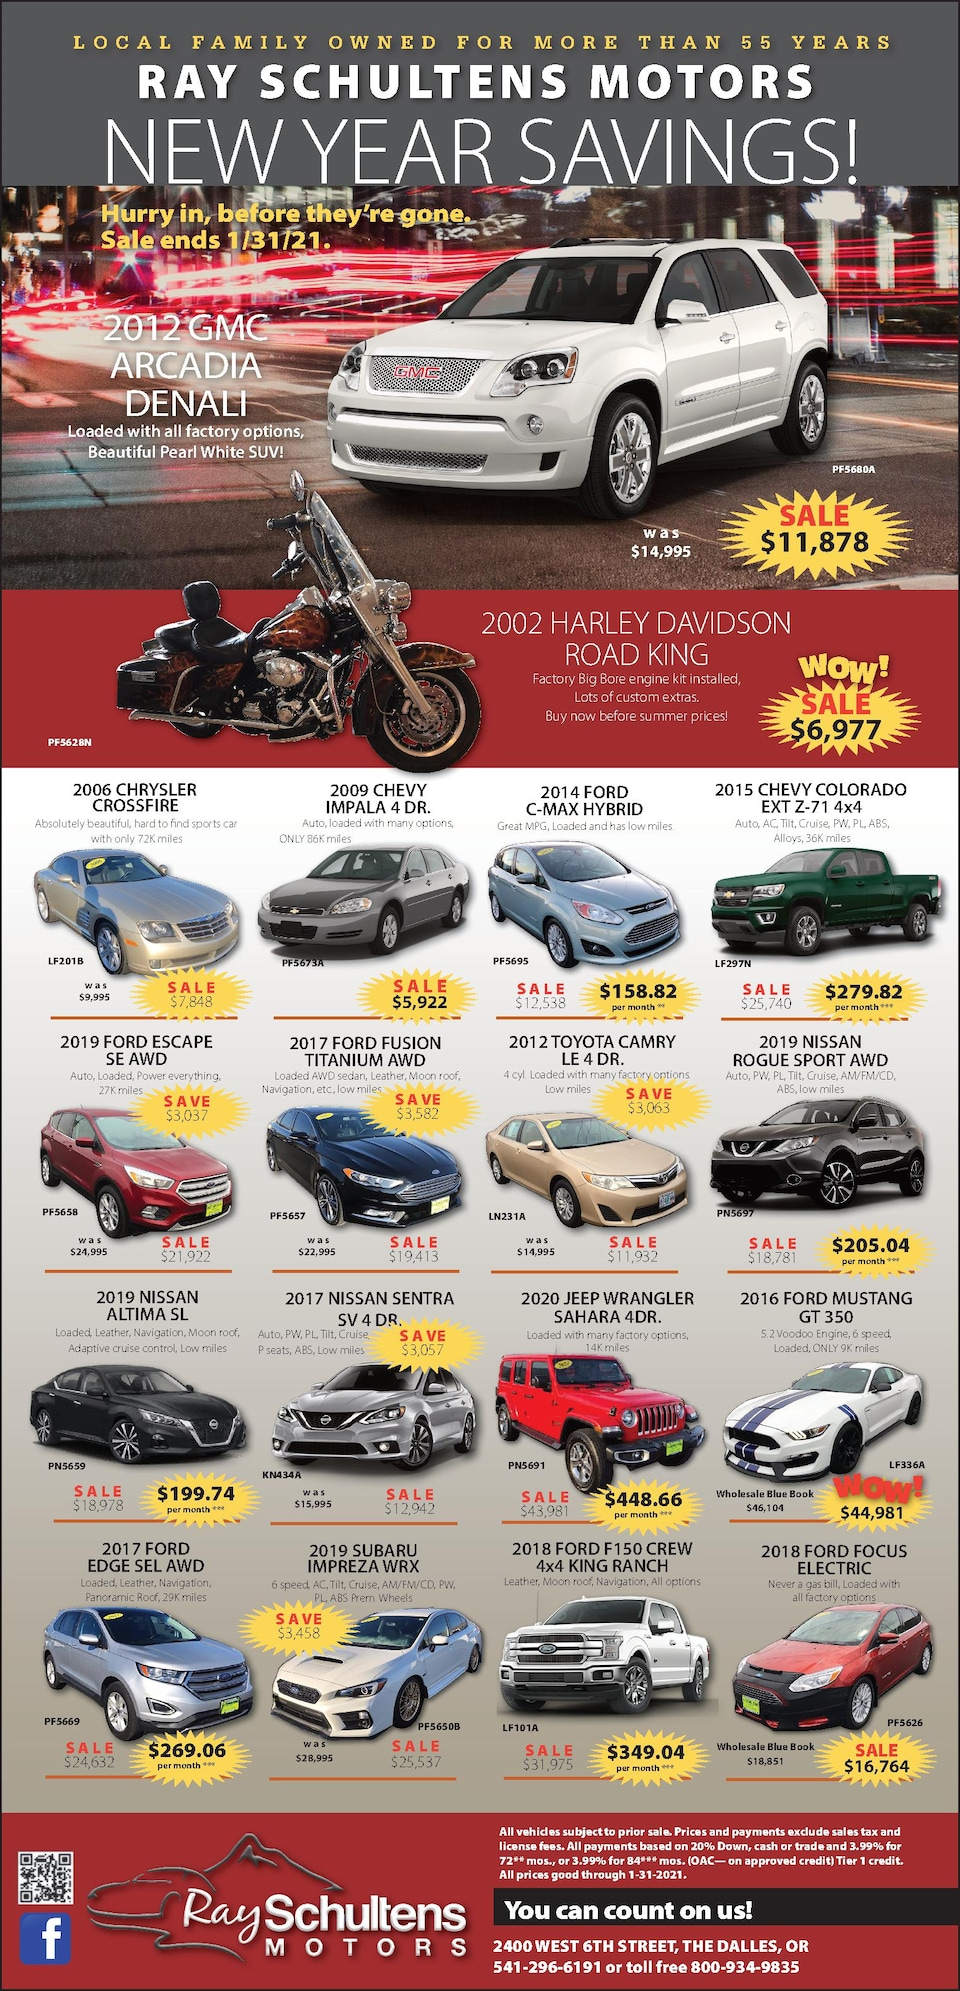 New Year Pre-Owned Savings!